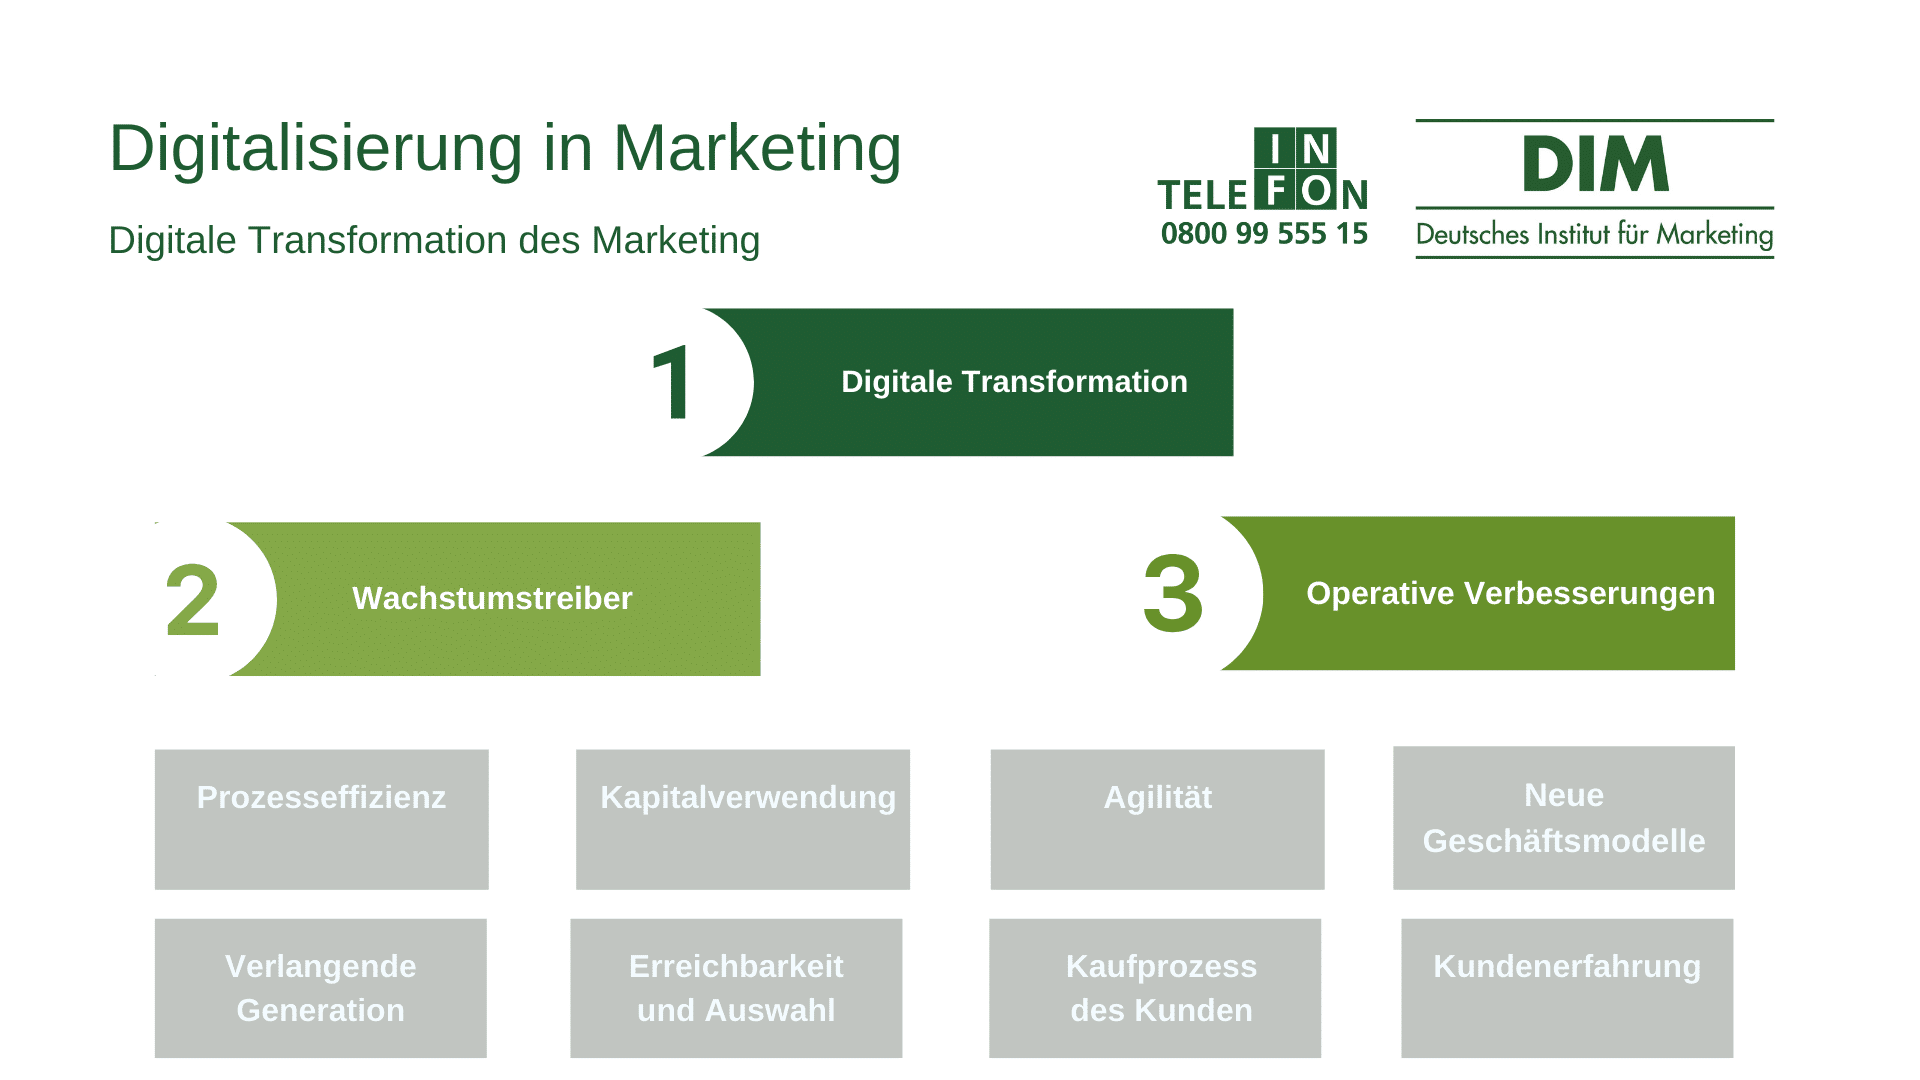 Digitalisierung im Marketing